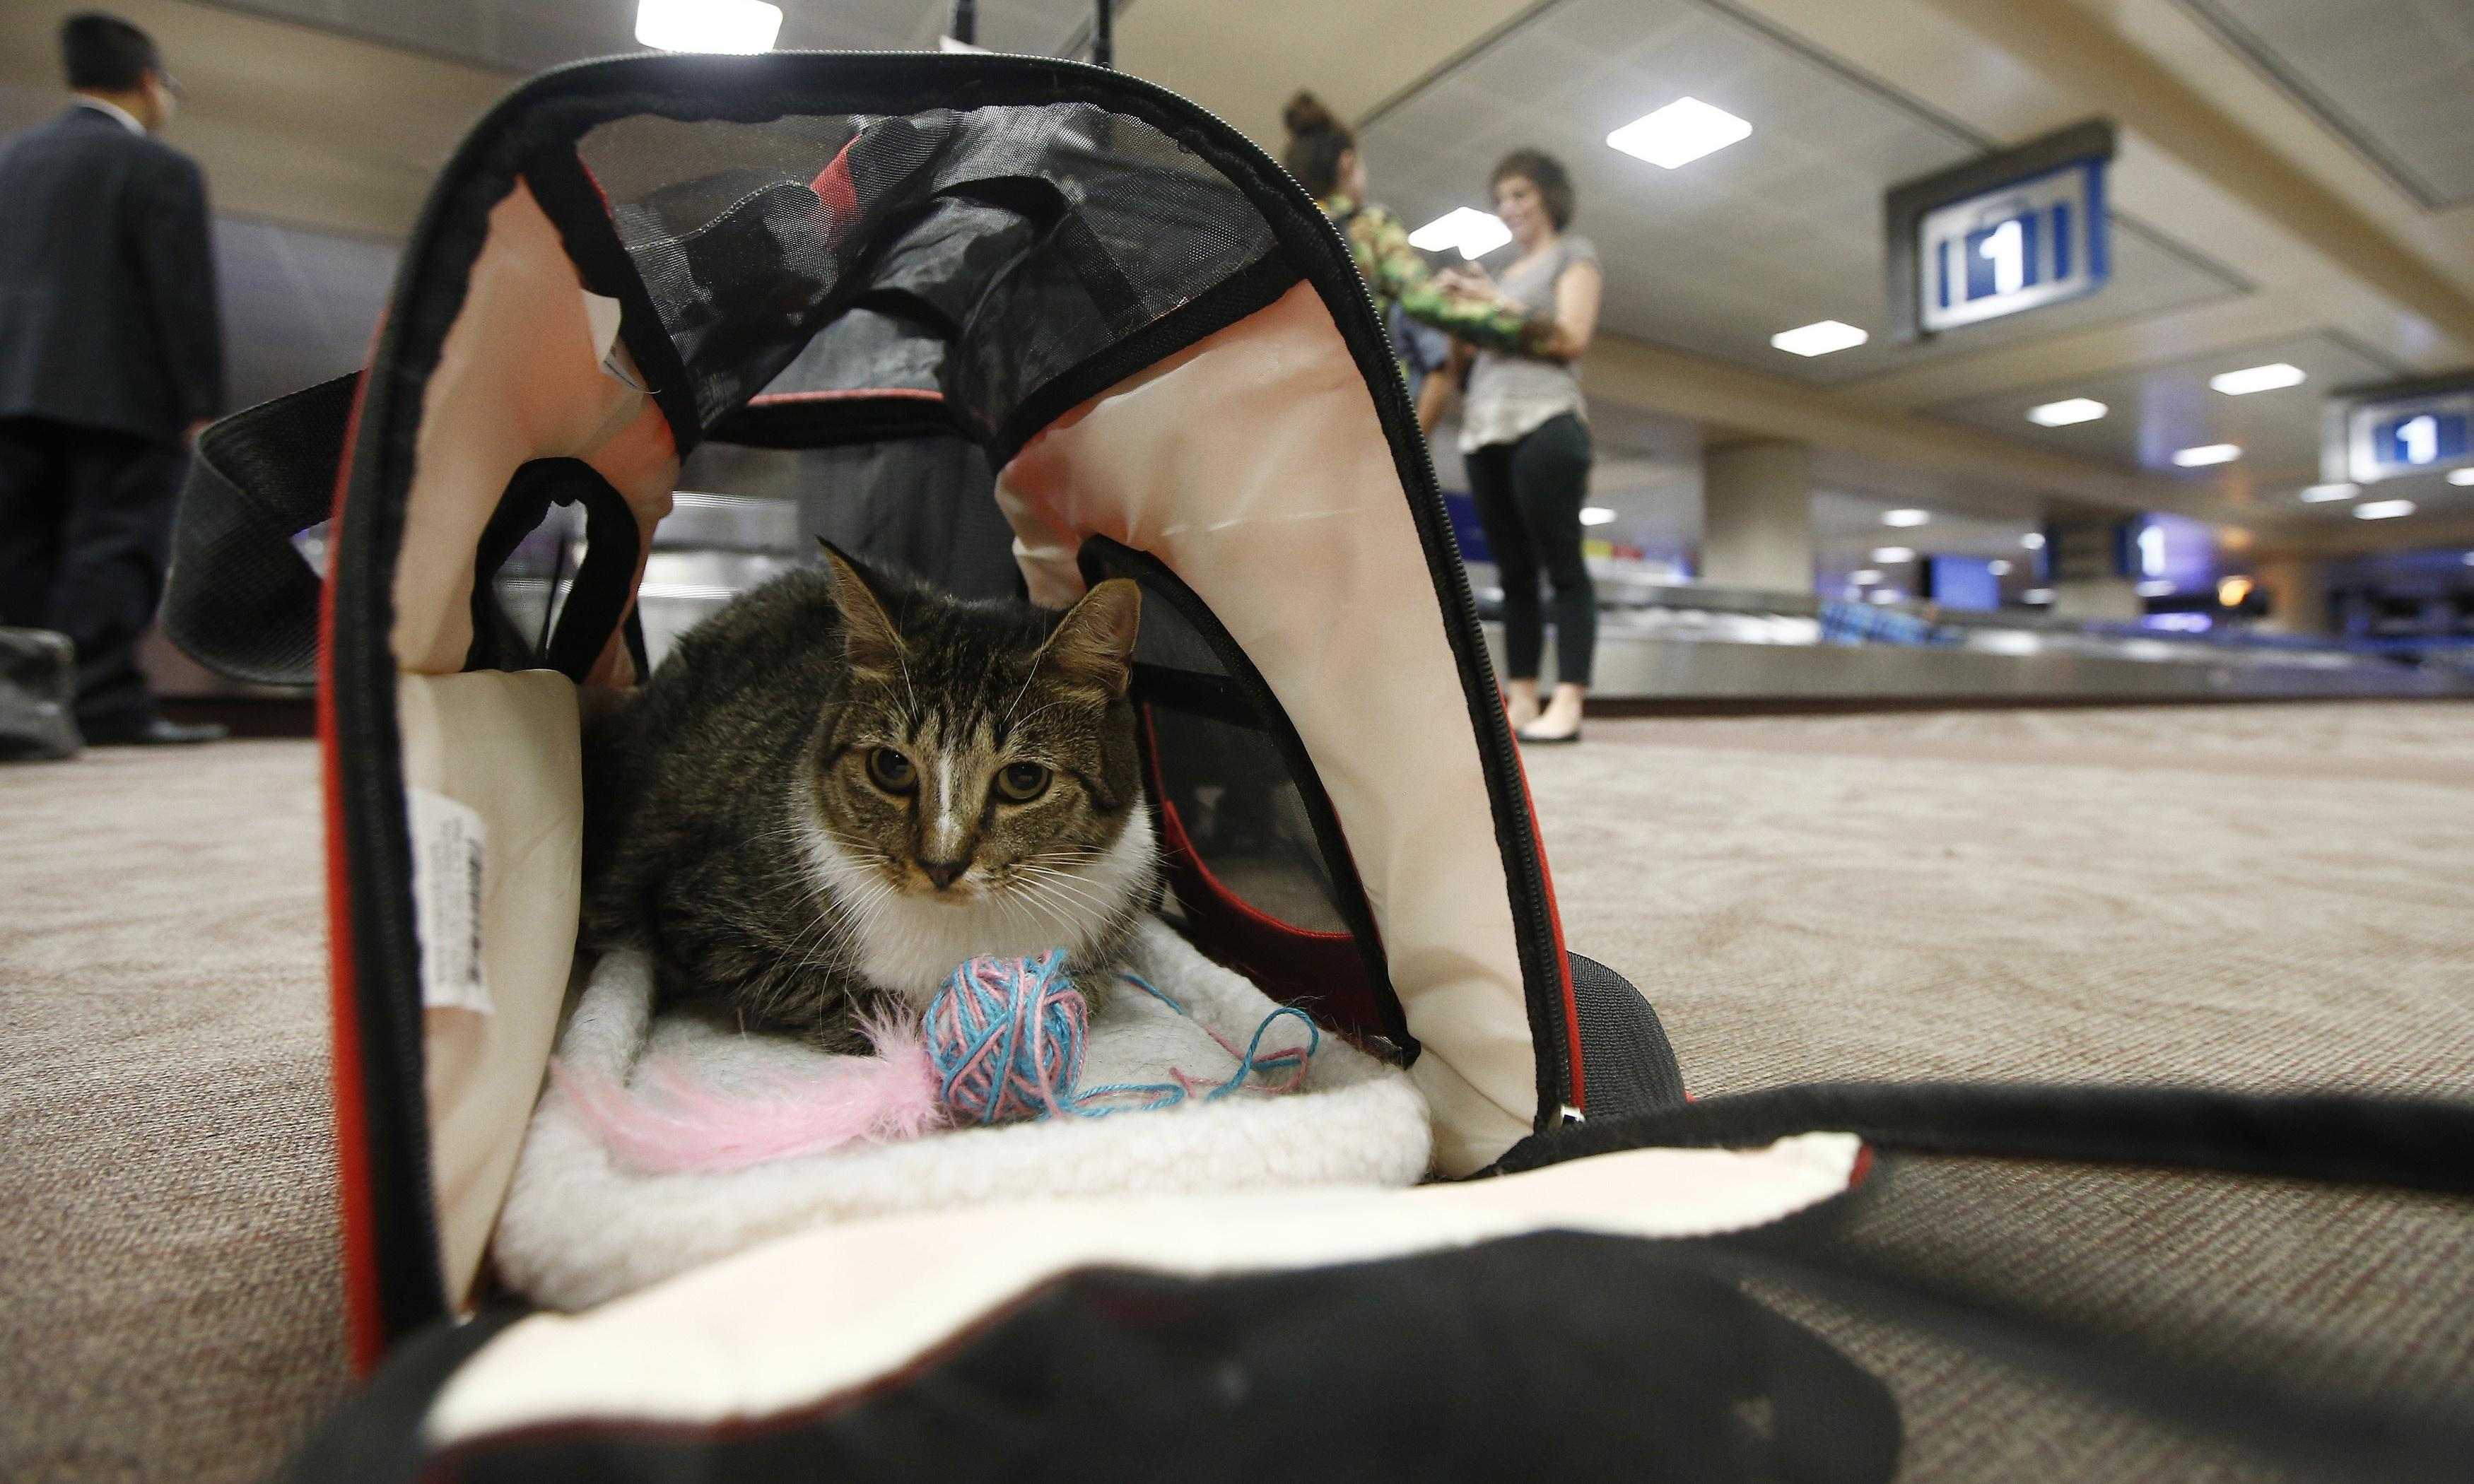 No more free rides: US seeks to limit emotional support animals on planes